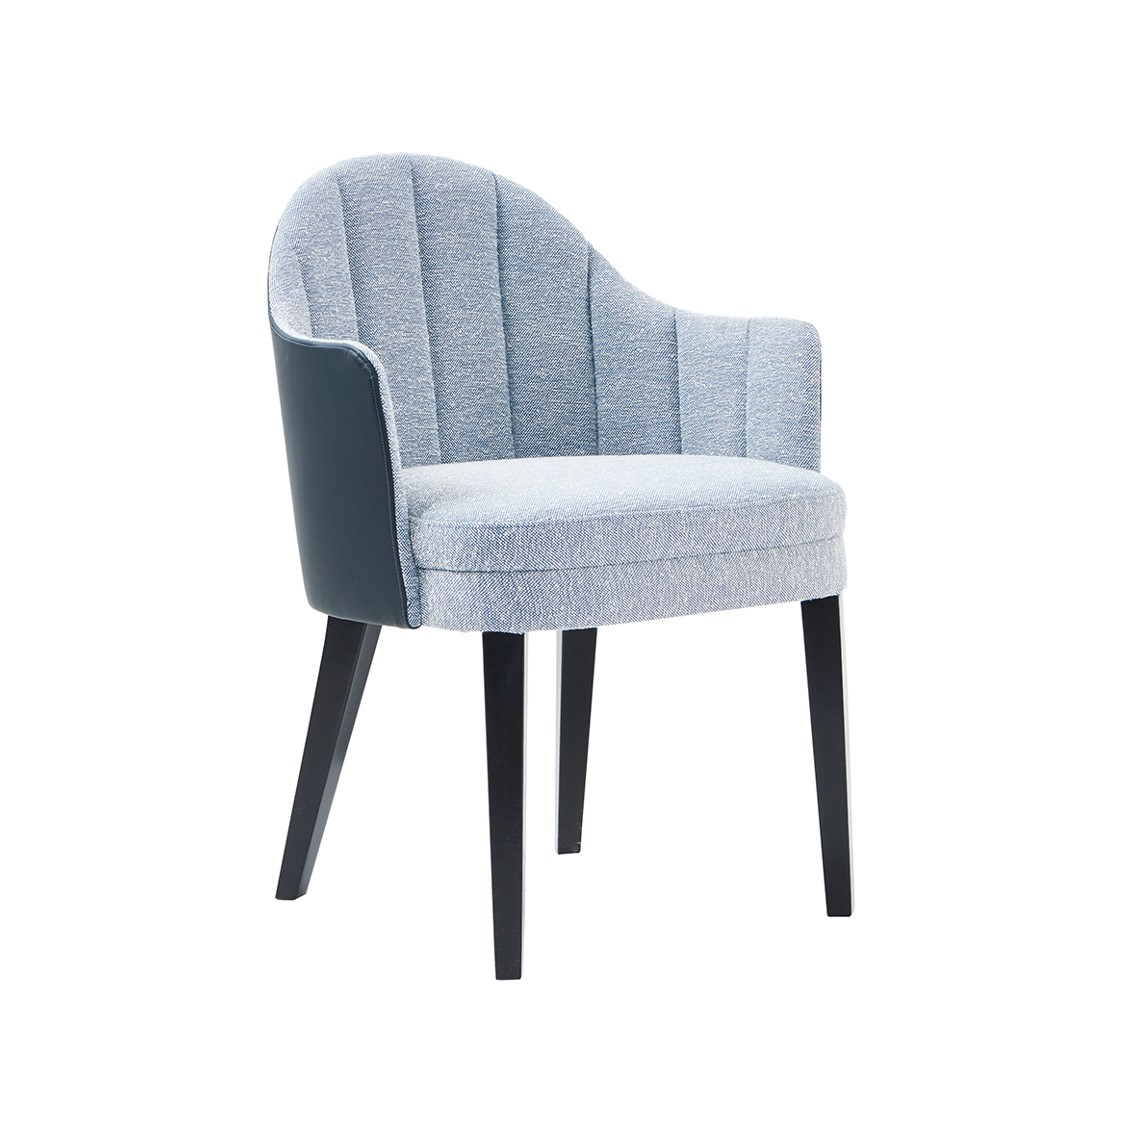 Corbetti Armchair Fluted Back X8 at DeFrae Contract Furniture Side on